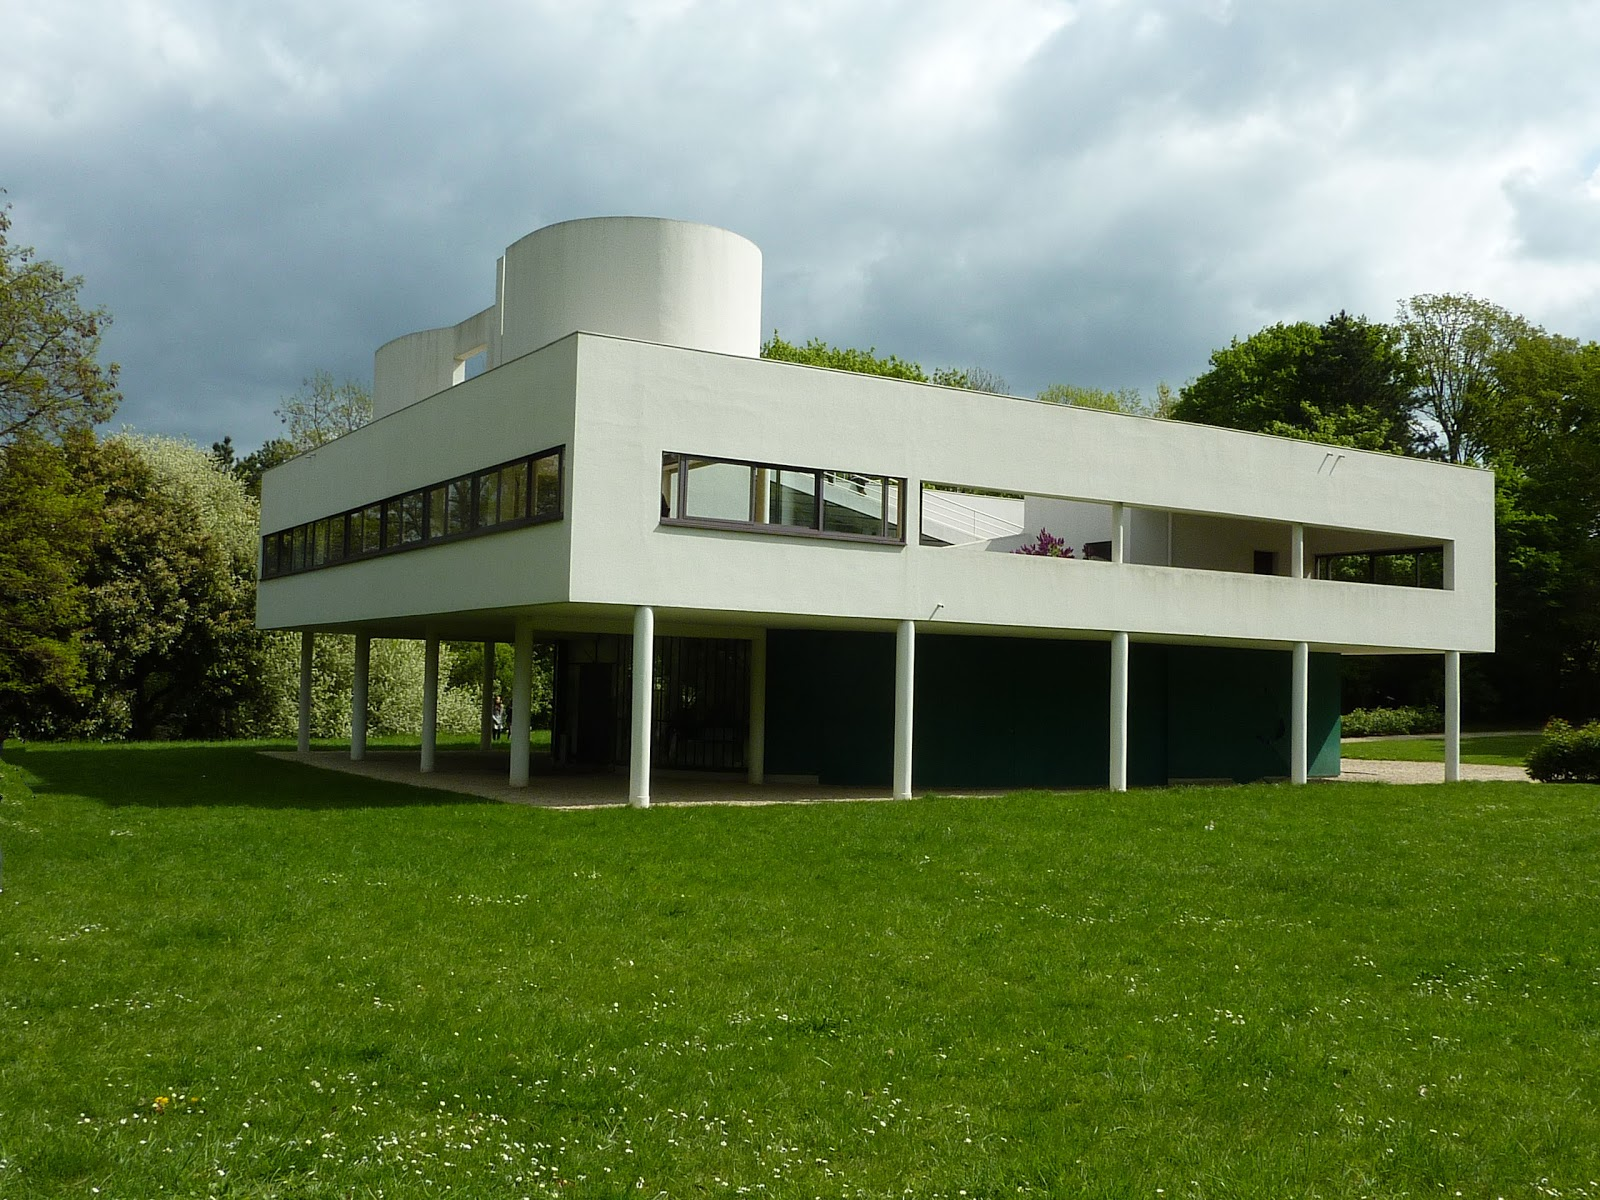 Parisienne curieuse villas blanches de le corbusier for L architecture